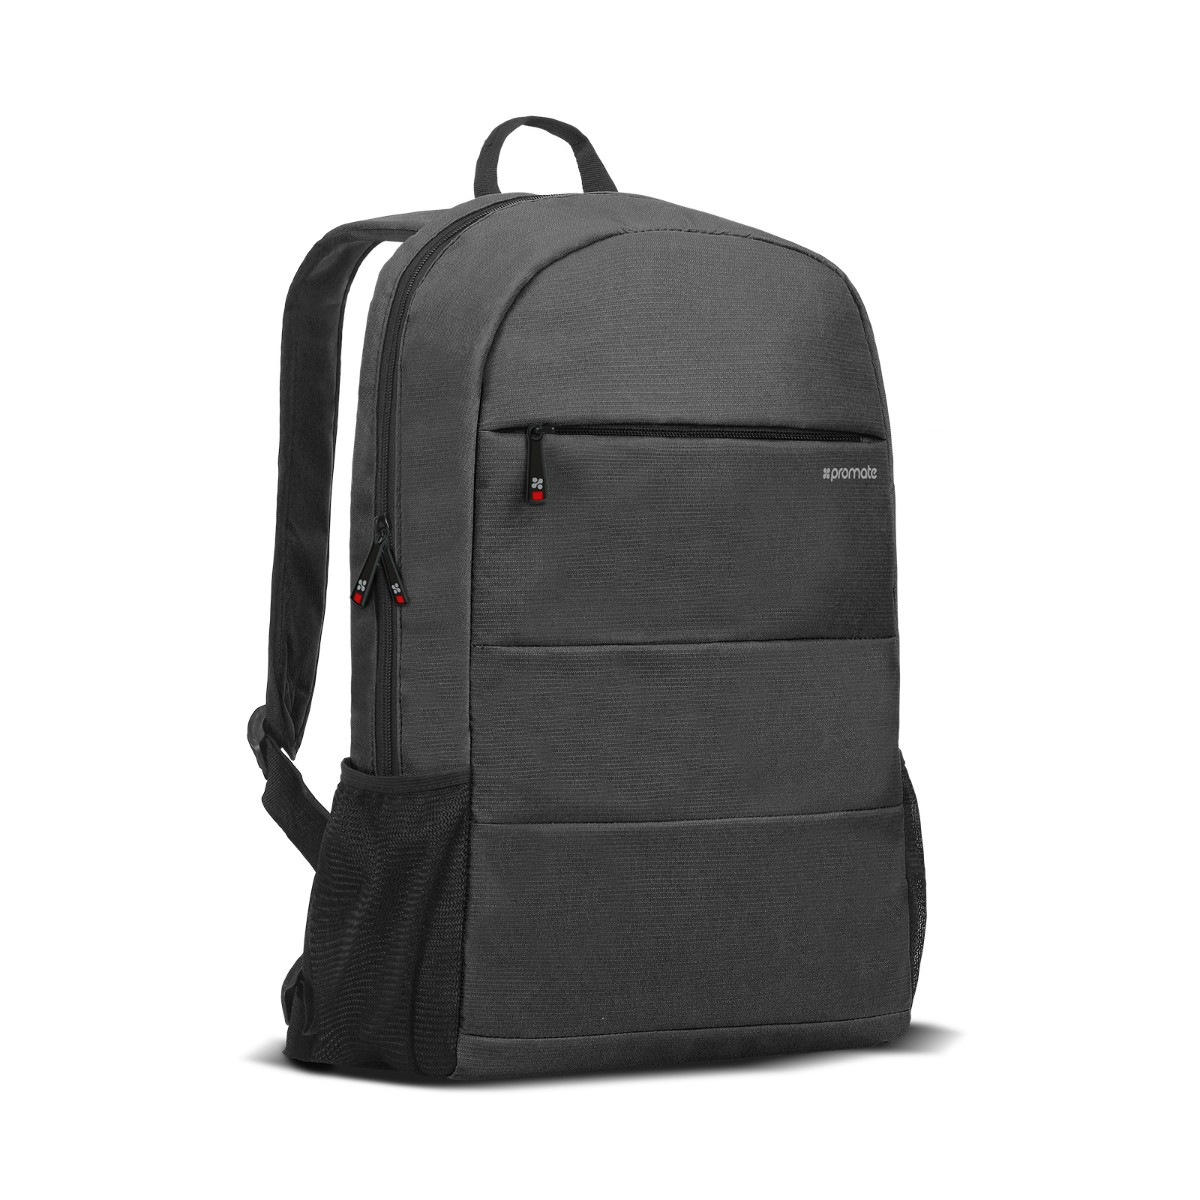 5555084b8e Promate Travel Laptop Backpack